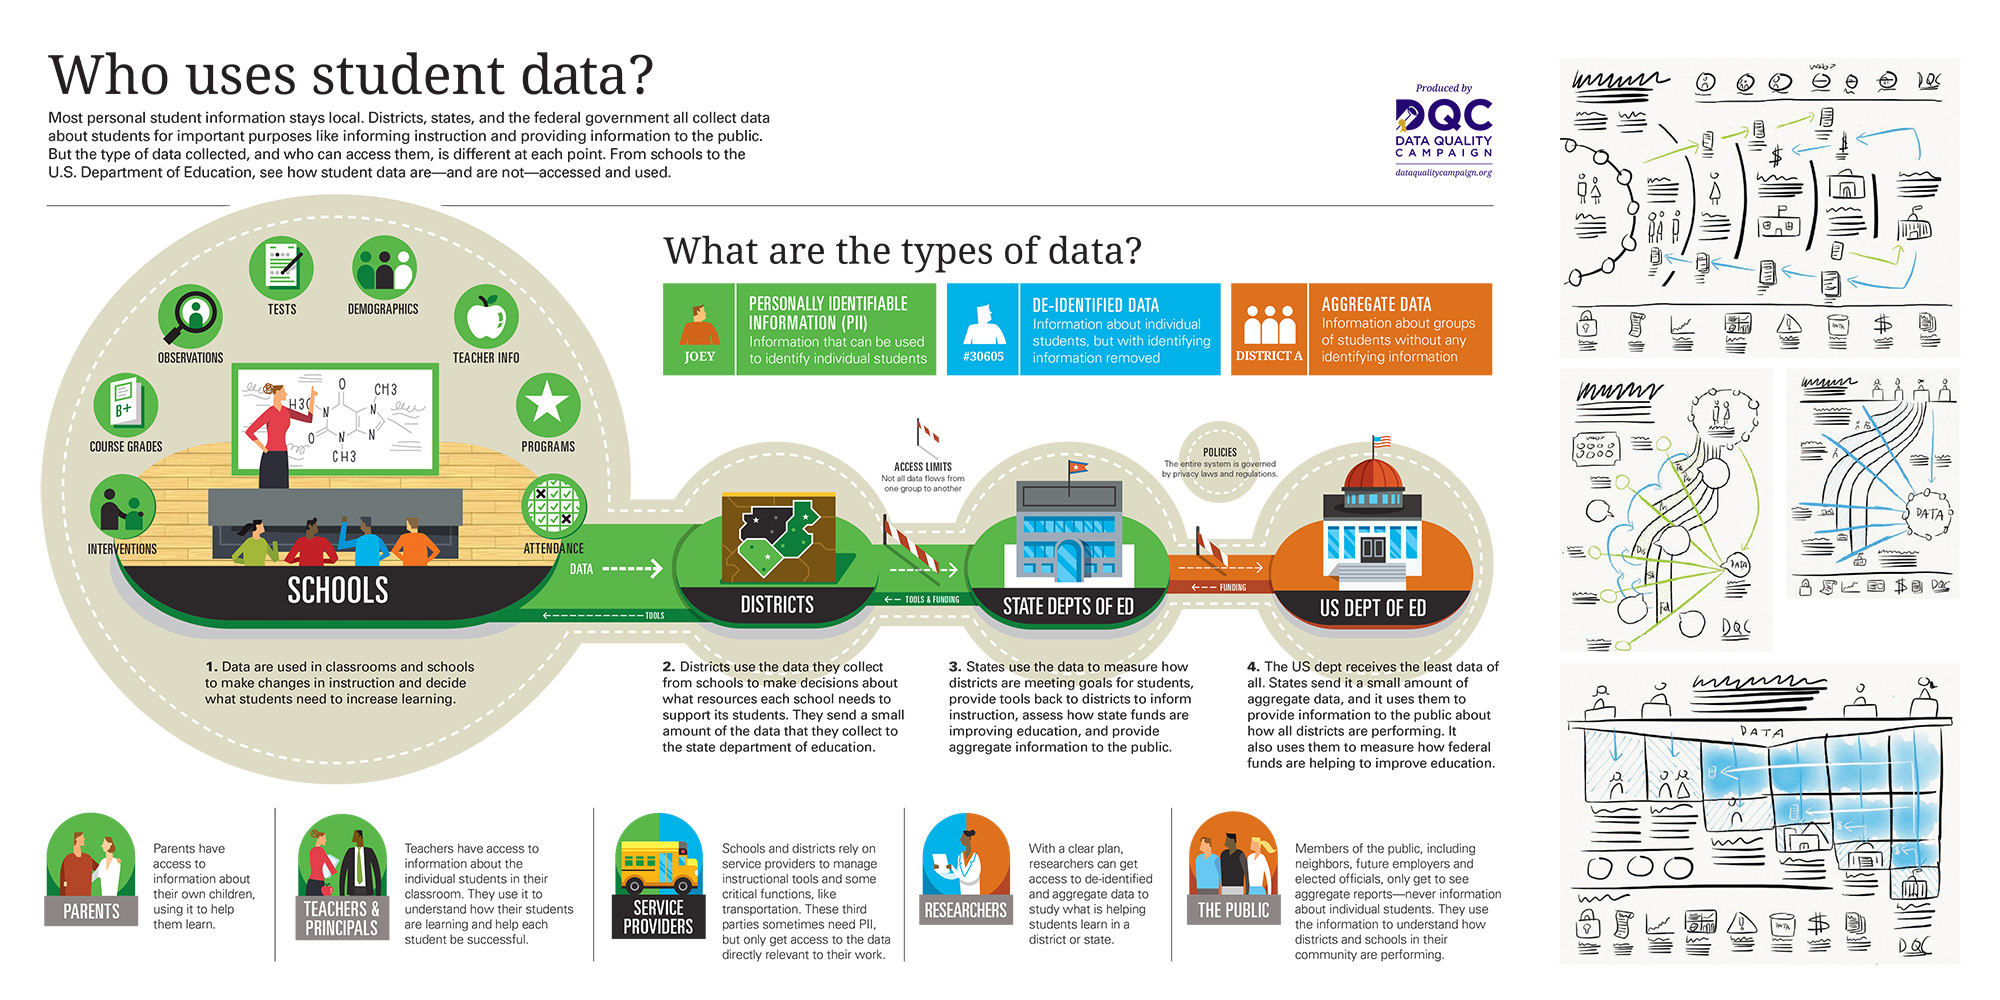 From http://dataqualitycampaign.org/find-resources/who-uses-student-data/